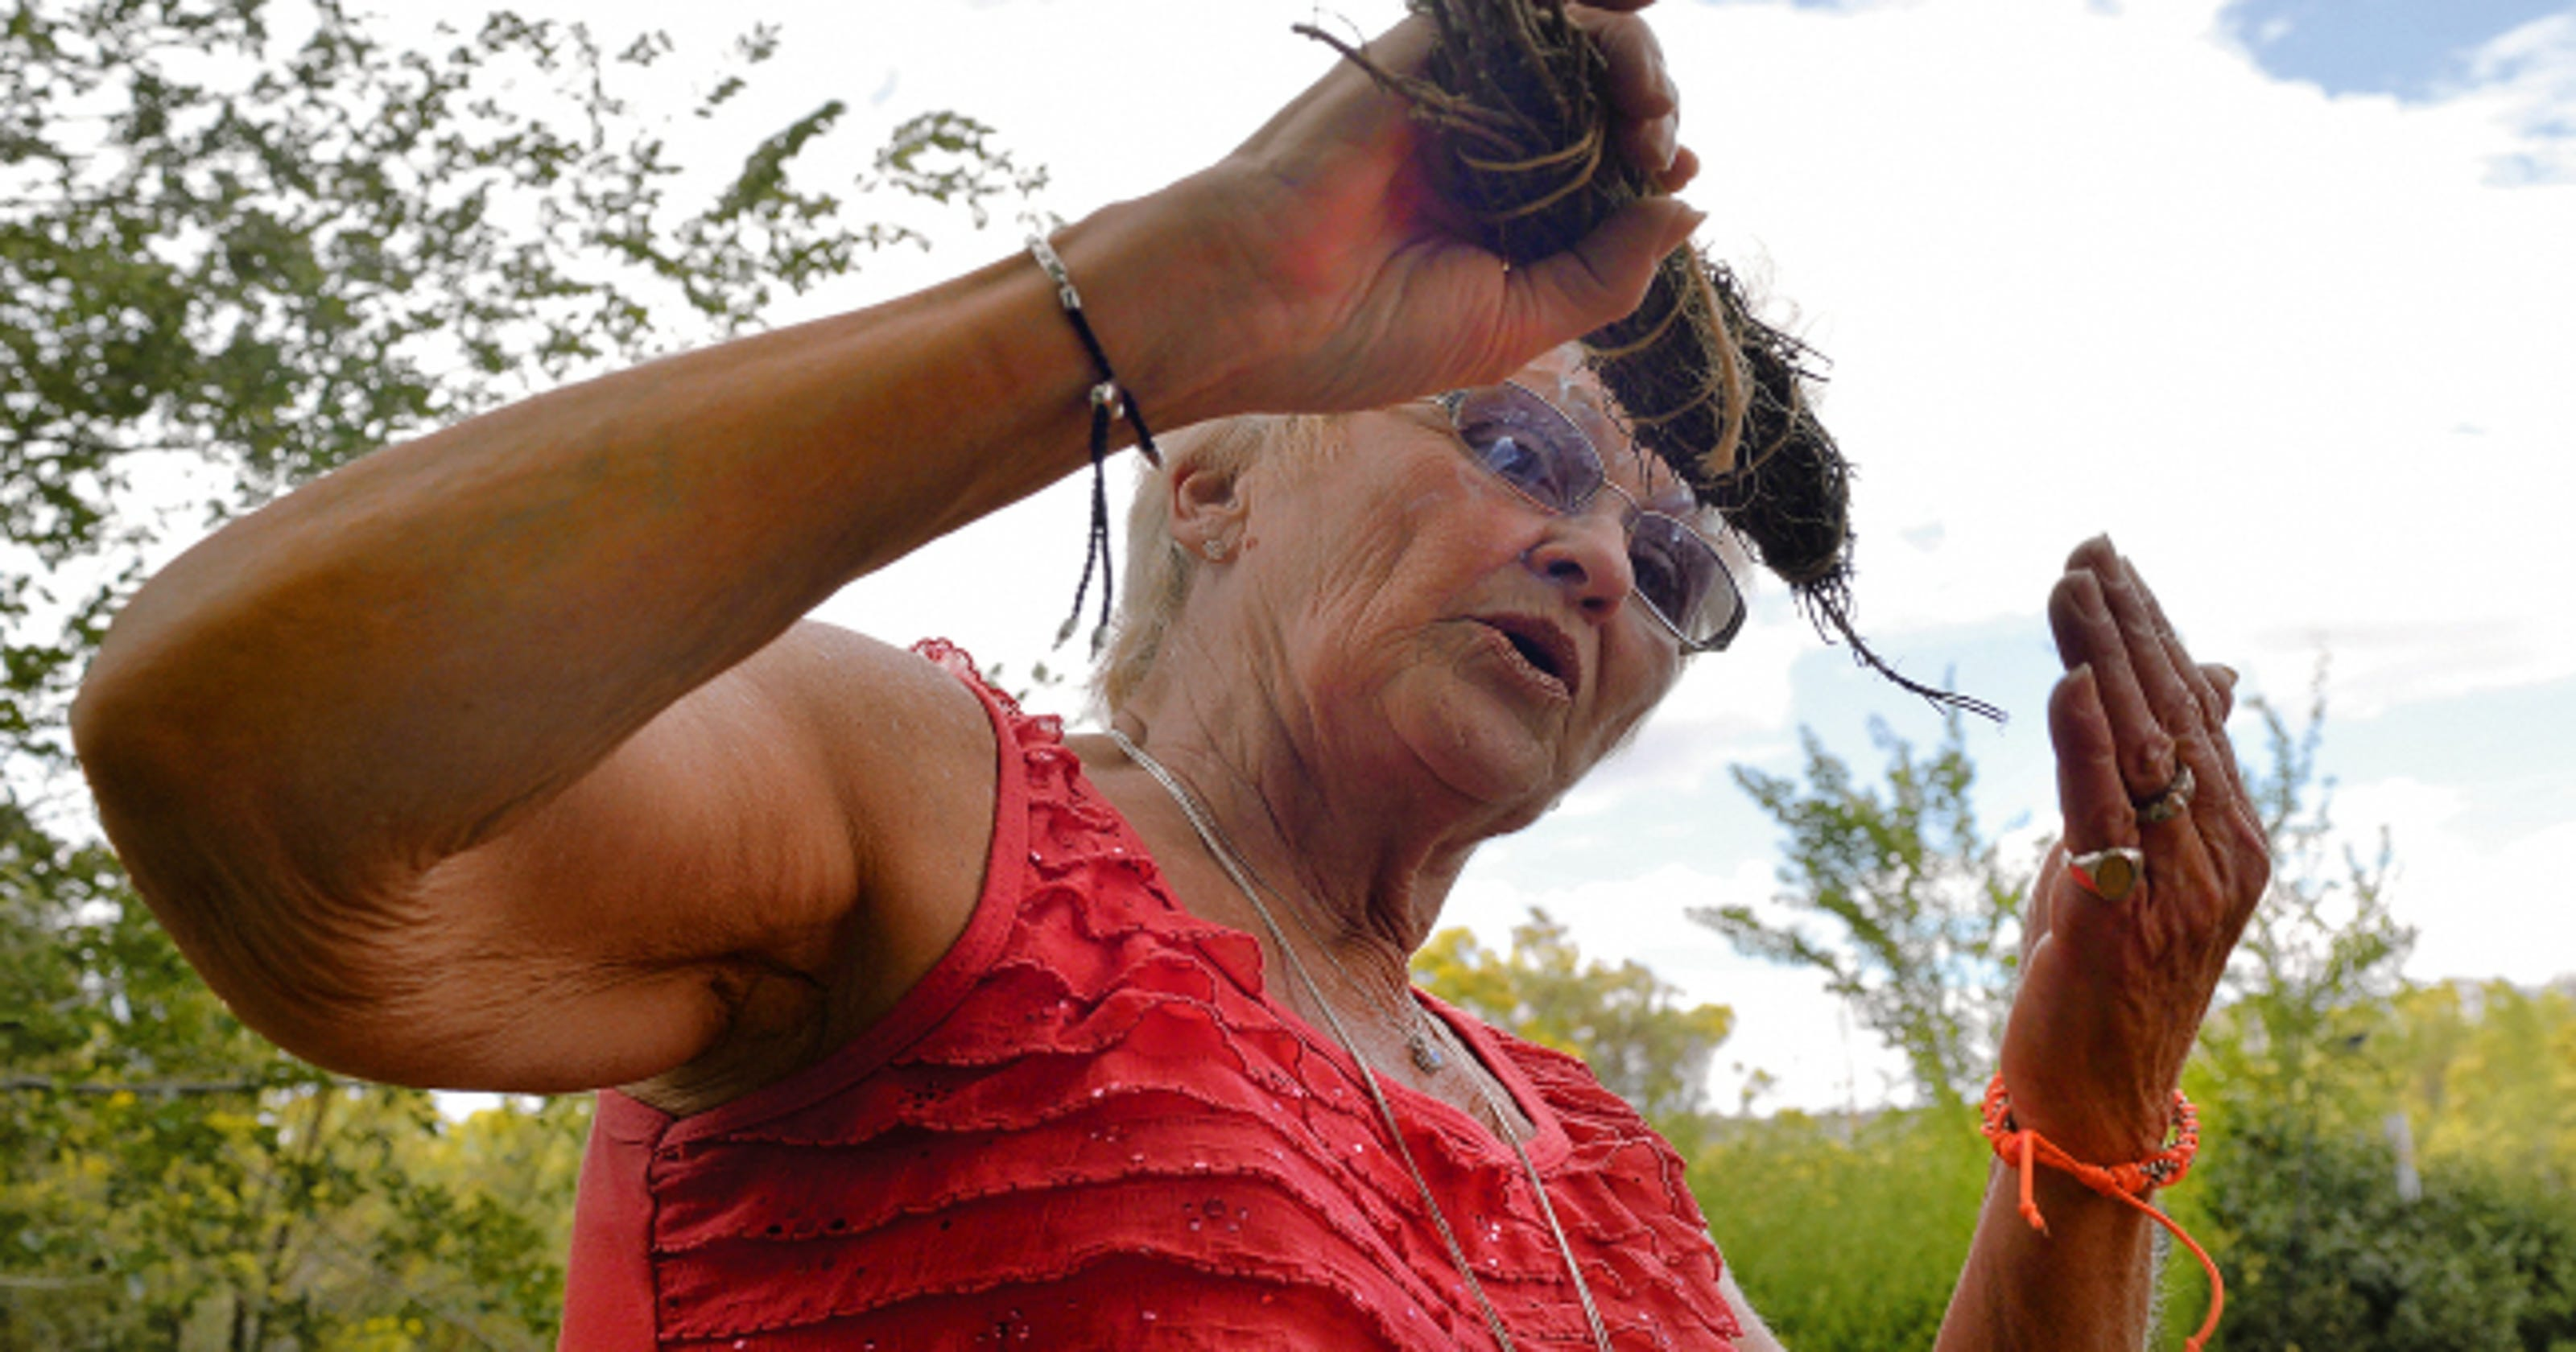 Wiccan group in Bloomfield celebrates nature and a shared path